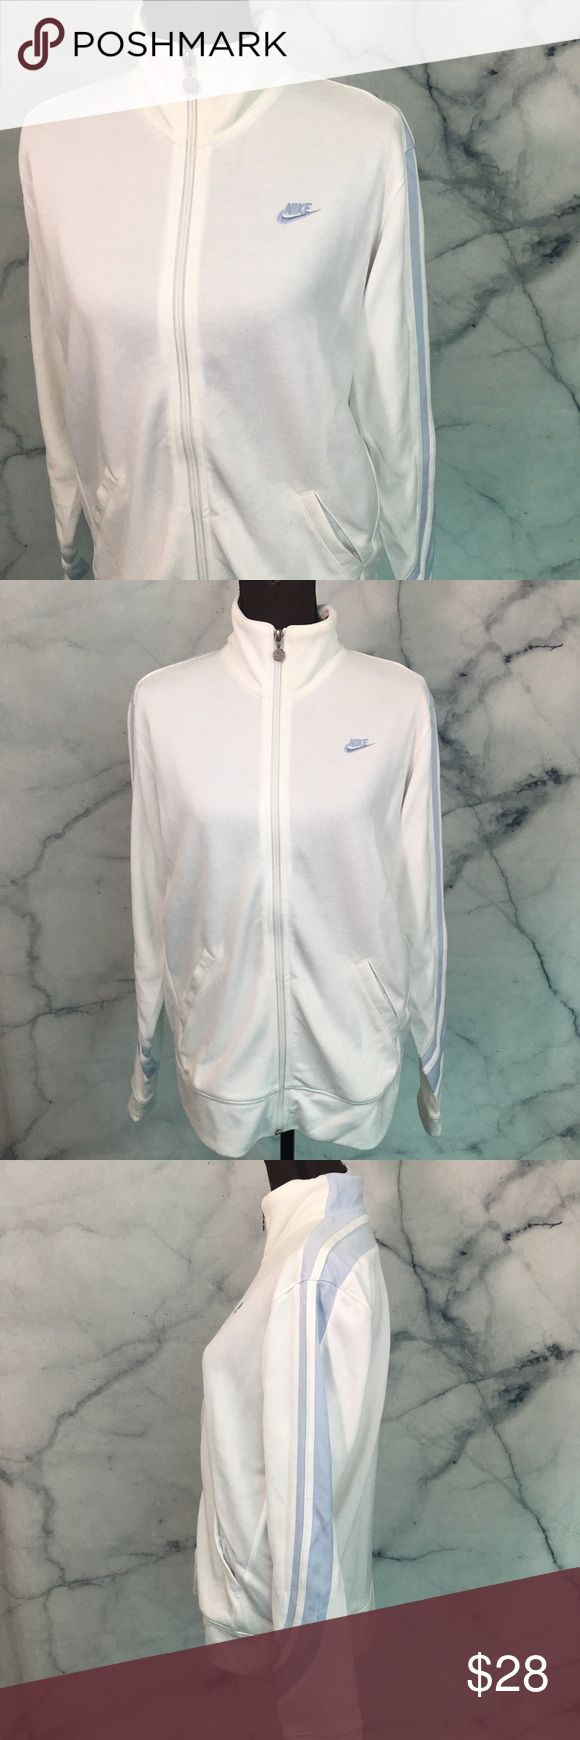 NWT Nike Track Jacket Zip Up Sweatshirt NWT Nike Sweatshirt Zip Up. White with light blue details. One mark shown in photos, haven't tried treating as this is new with tags. Tops Sweatshirts & Hoodies